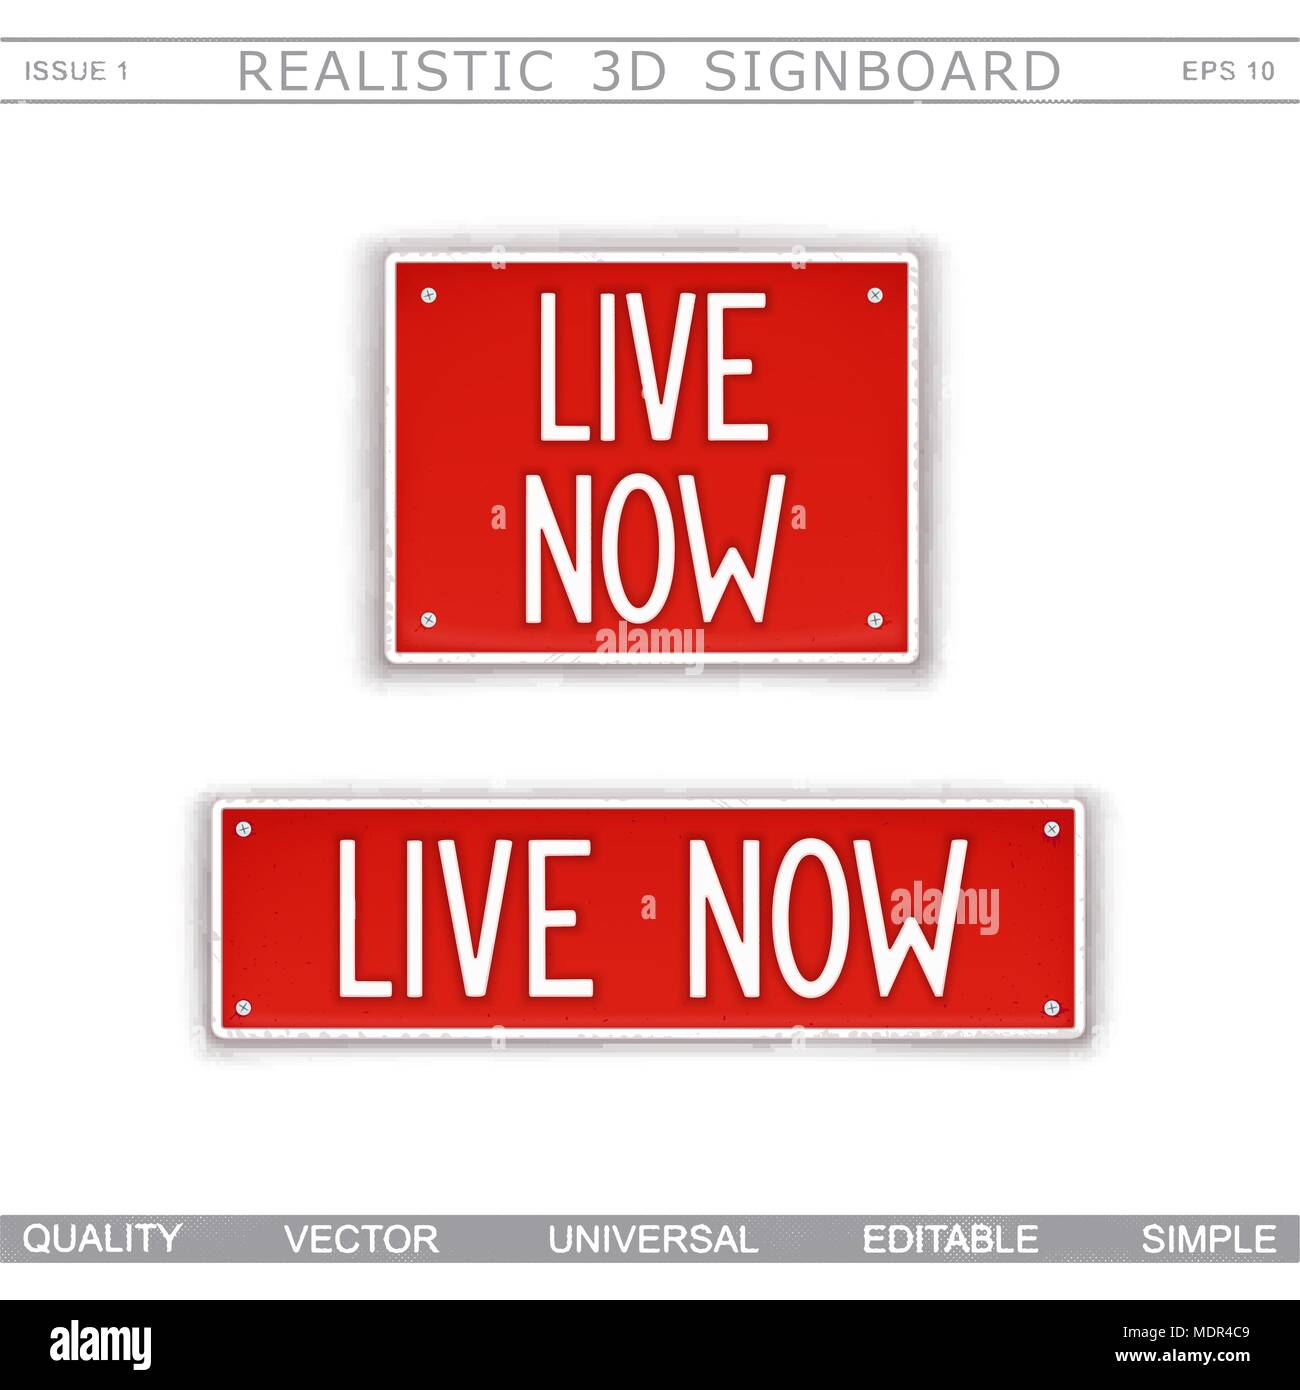 Live Now. Signboard stylized car license plate. Top view. Vector design elements - Stock Image